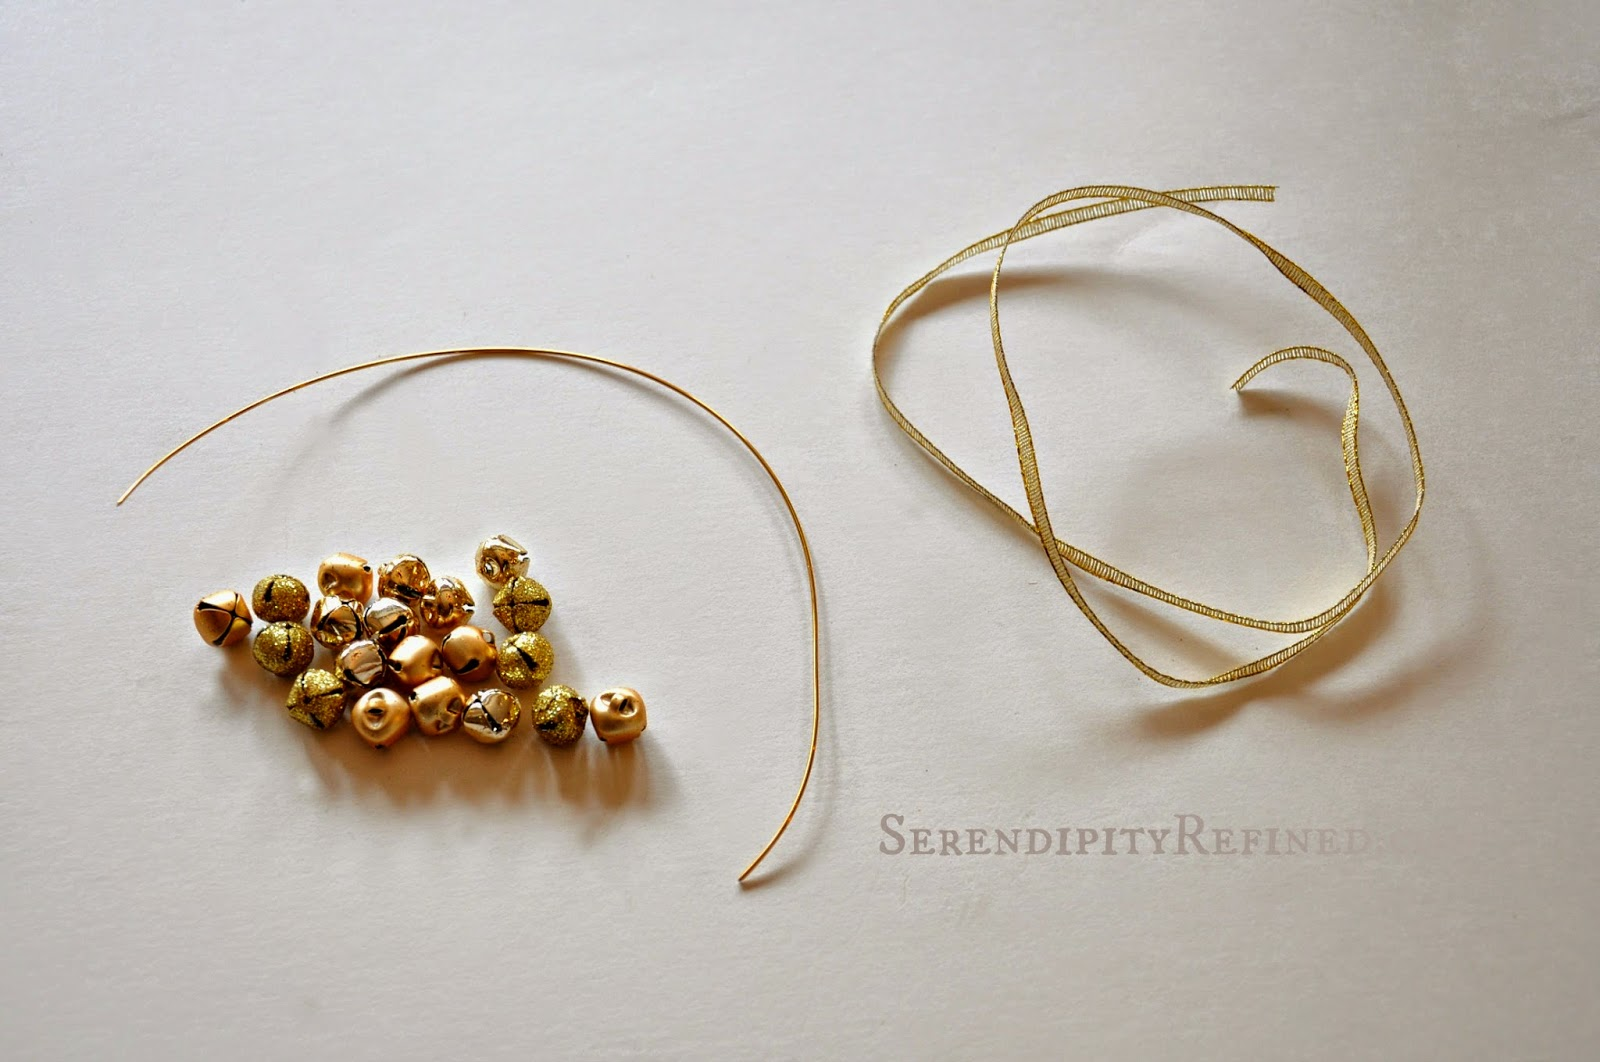 Jingle bell ornaments - Refined Blog Easy Gold Jingle Bell Wreath Ornament Day 2